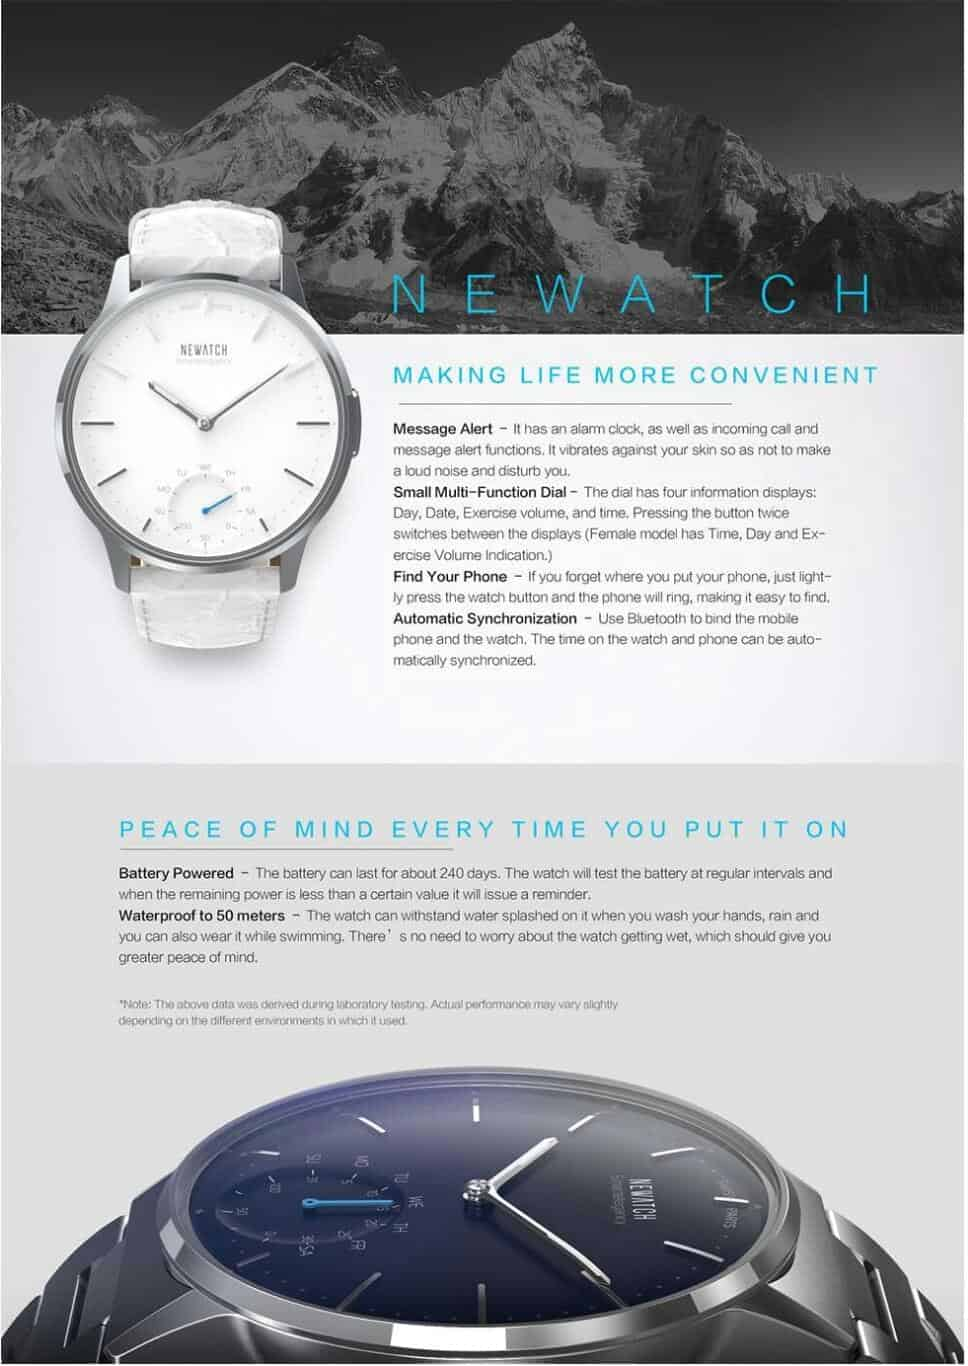 Meizu Newatch 6